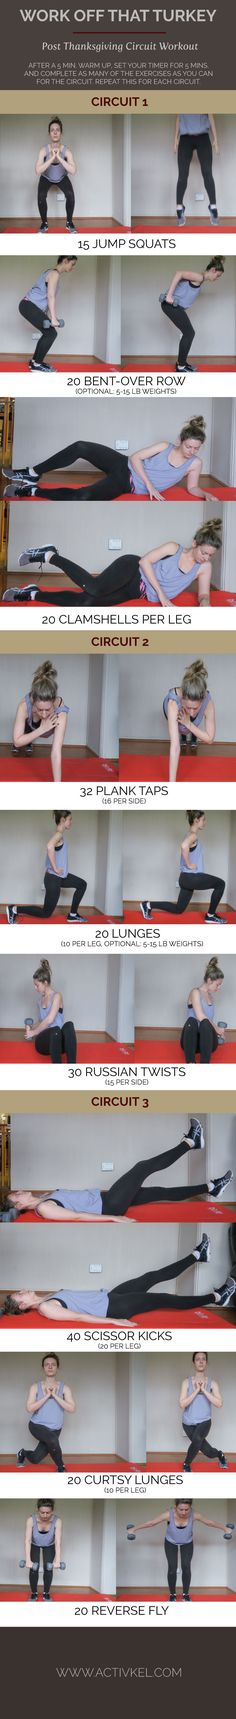 Burn off all the food you ate at Thanksgiving with this circuit workout! These exercises target your abs, legs and arms for a full body workout.